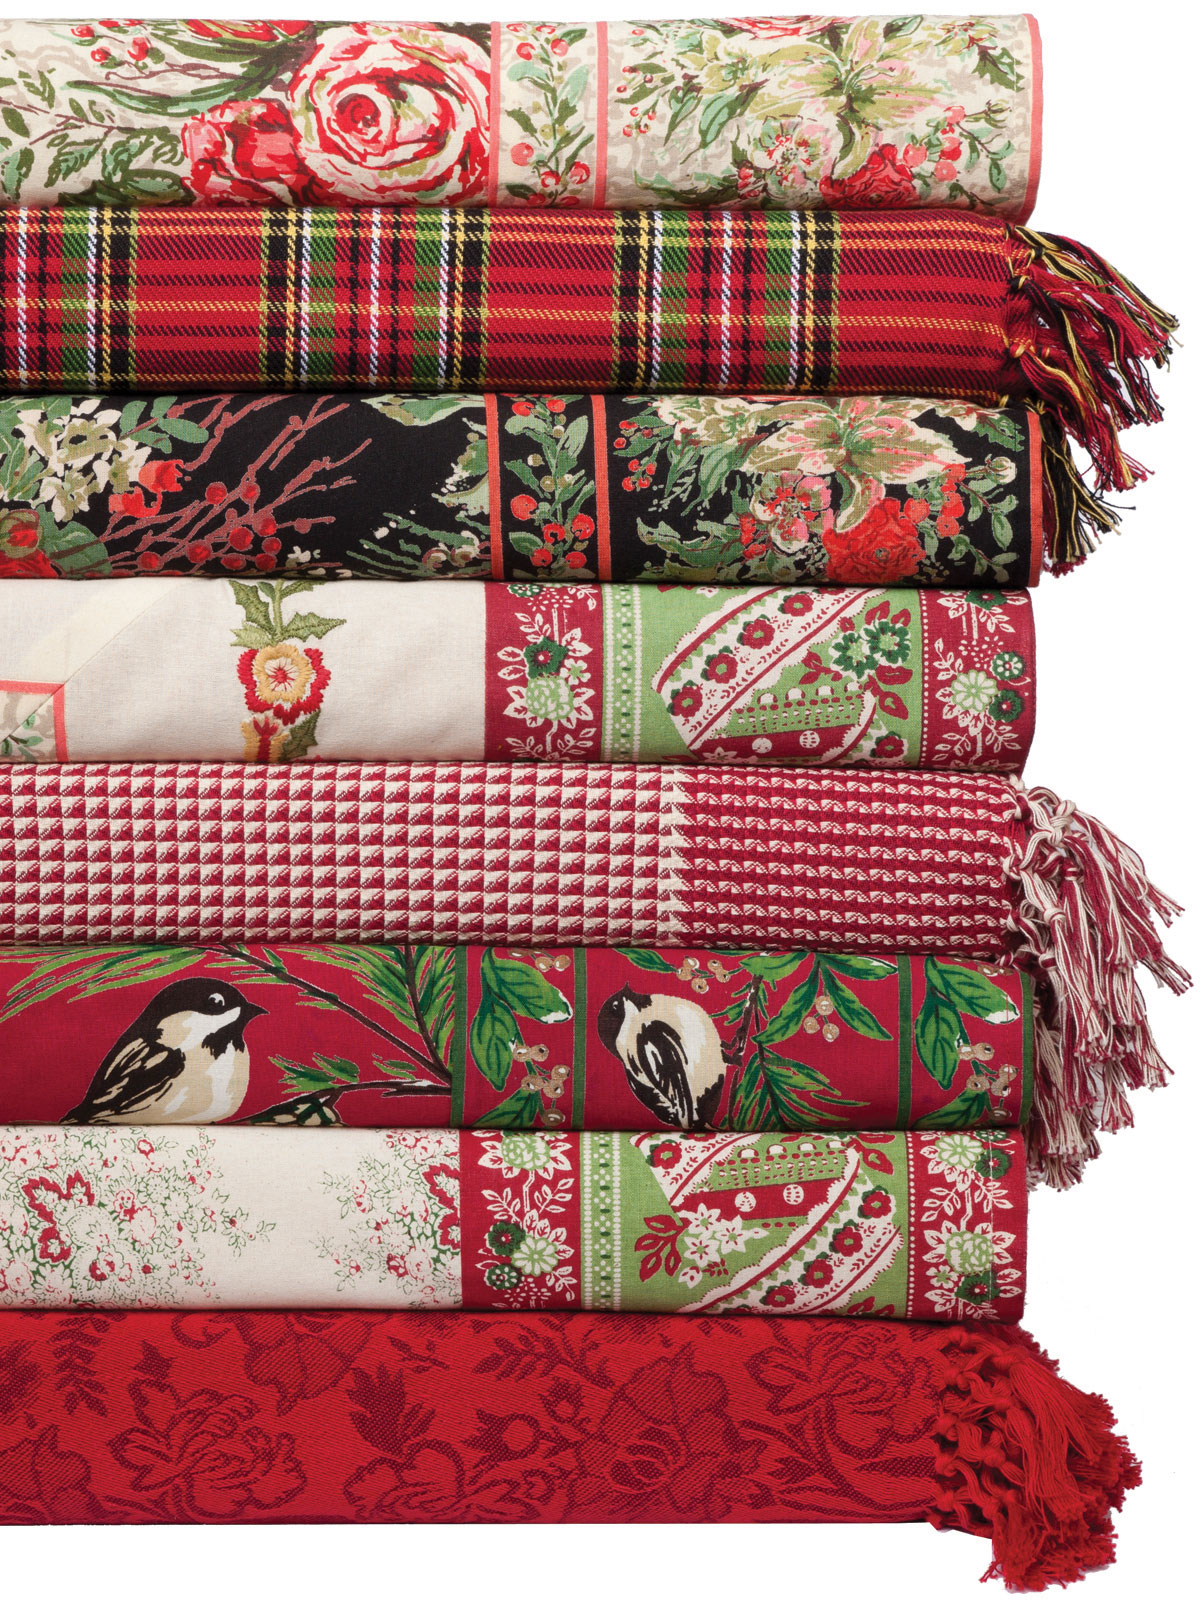 Joyful Patchwork Tablecloth Your Home Christmas Forever